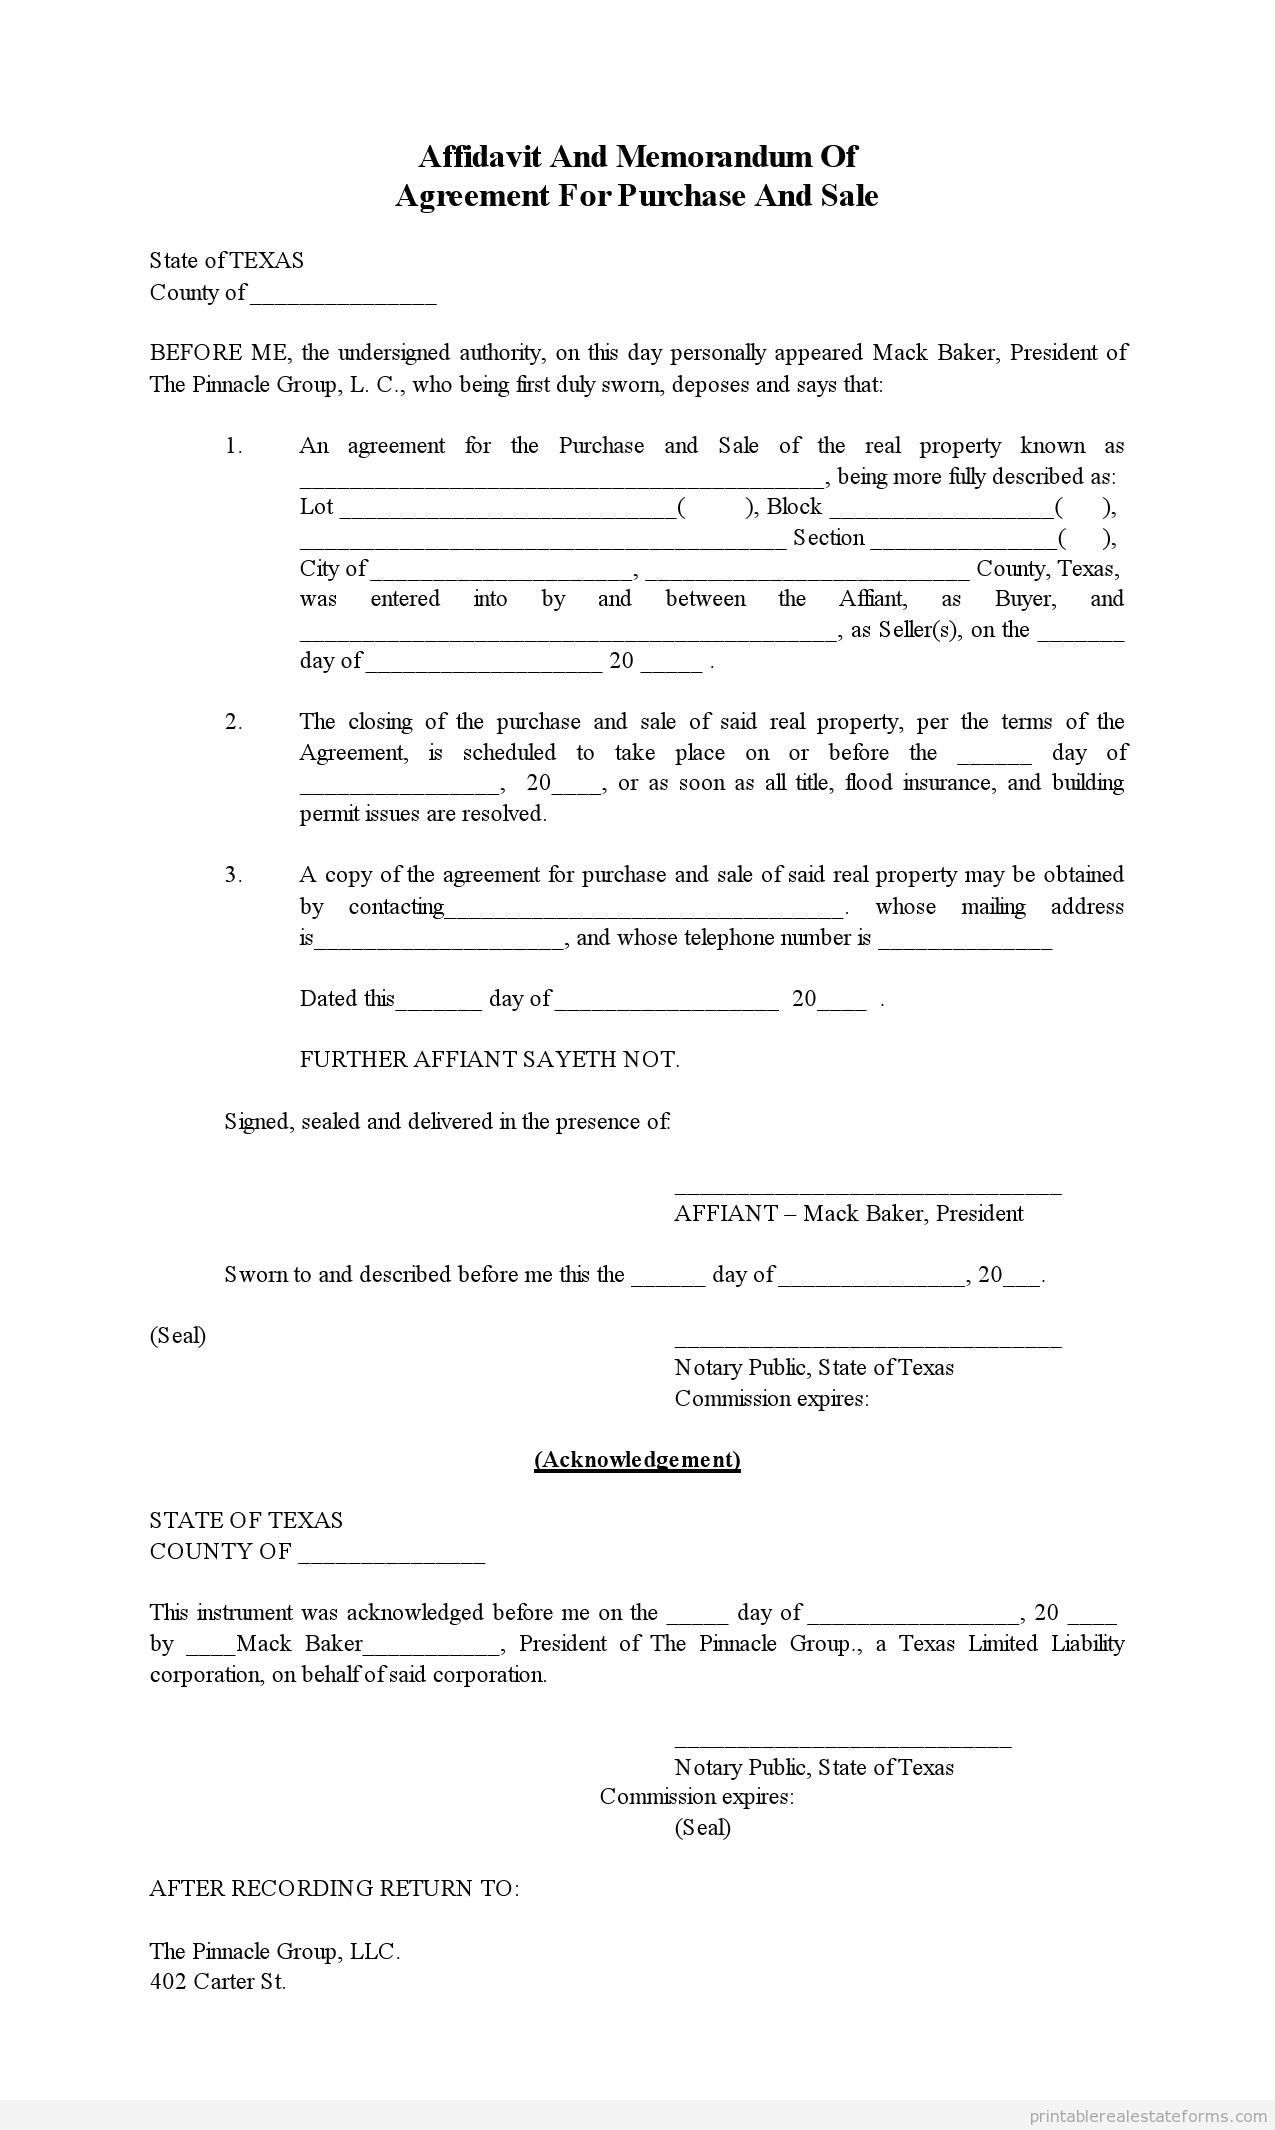 Sample Printable affidavit of memorandum for purchase and sale 2 – Agreement to Purchase Real Estate Form Free